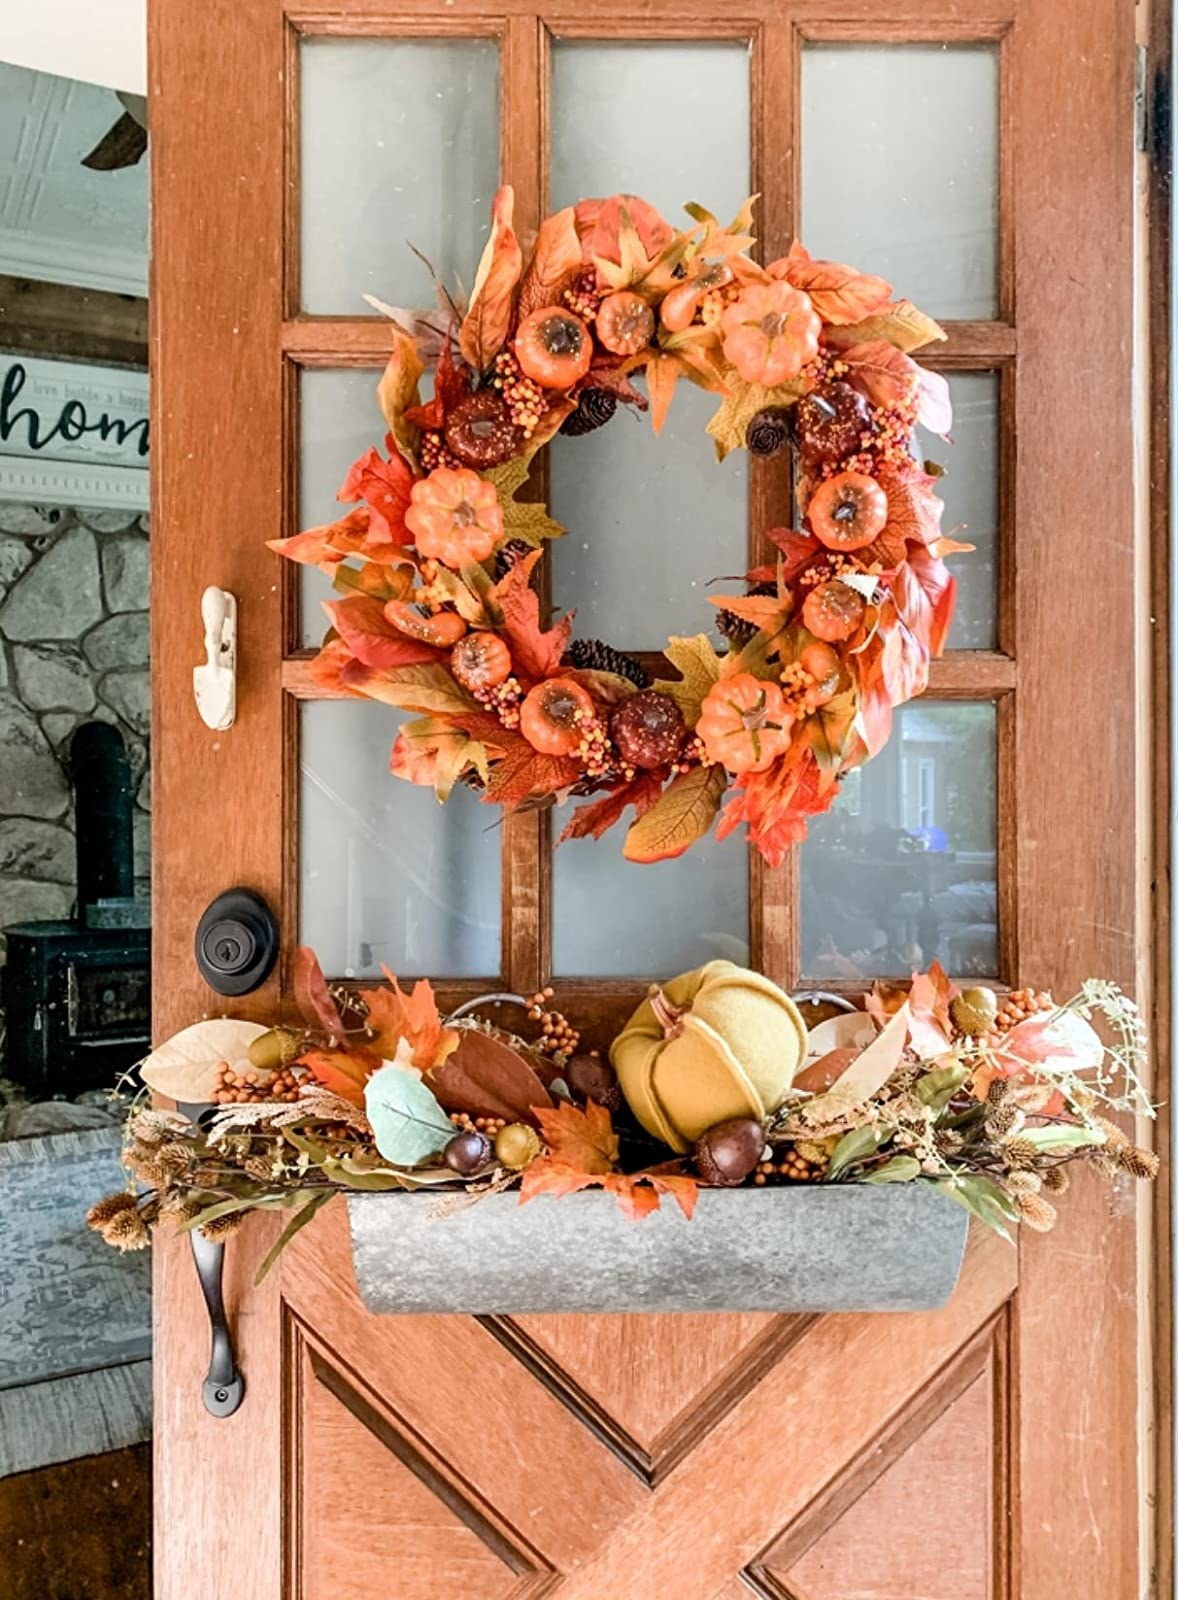 The wreath full of colorful artificial leaves and berries and mini pumpkins on a reviewer's door